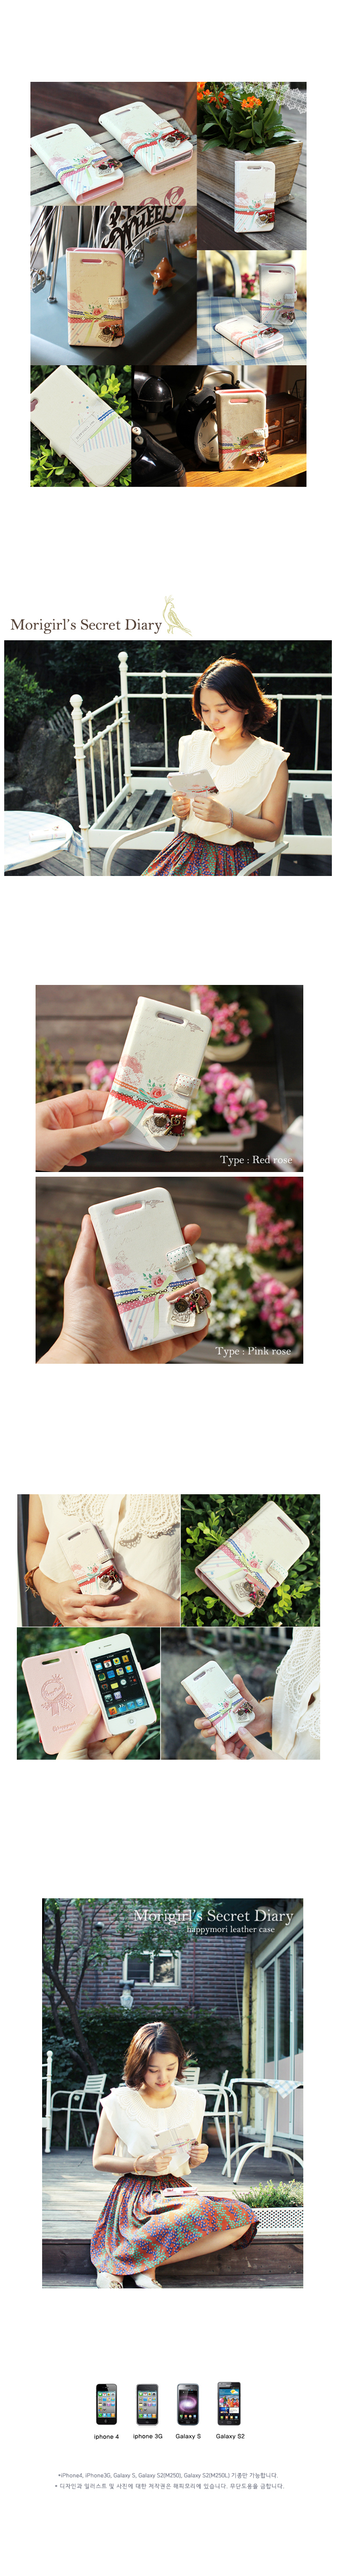 [HAPPYMORI] Flip Cover Case _Secret Diary(iPhone6Plus,iPhone6Plus_s,Galaxy S6Edge,Galaxy S6,Galaxy Note4)